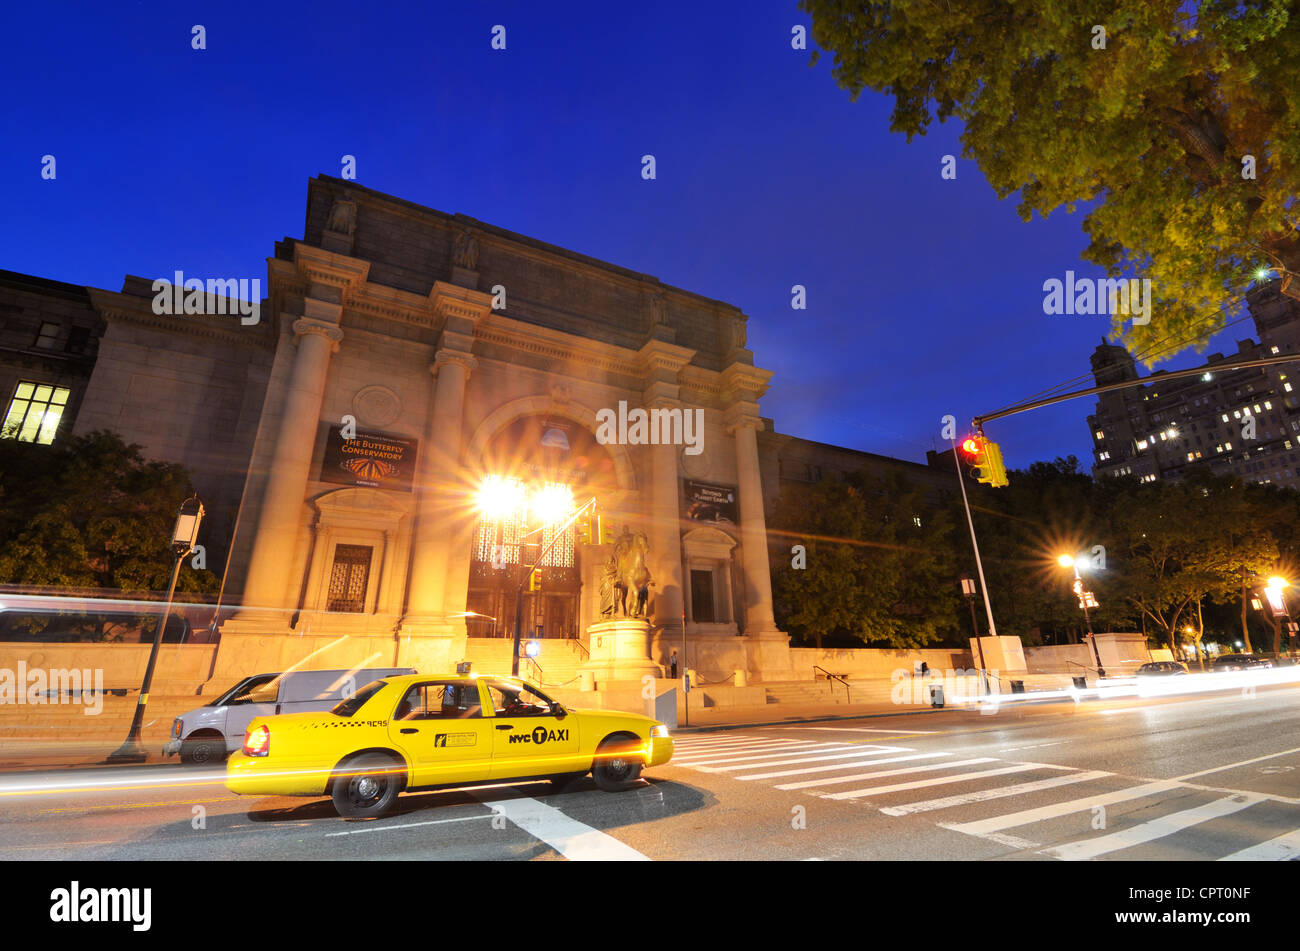 American Museum of Natural History in New York, New York. - Stock Image